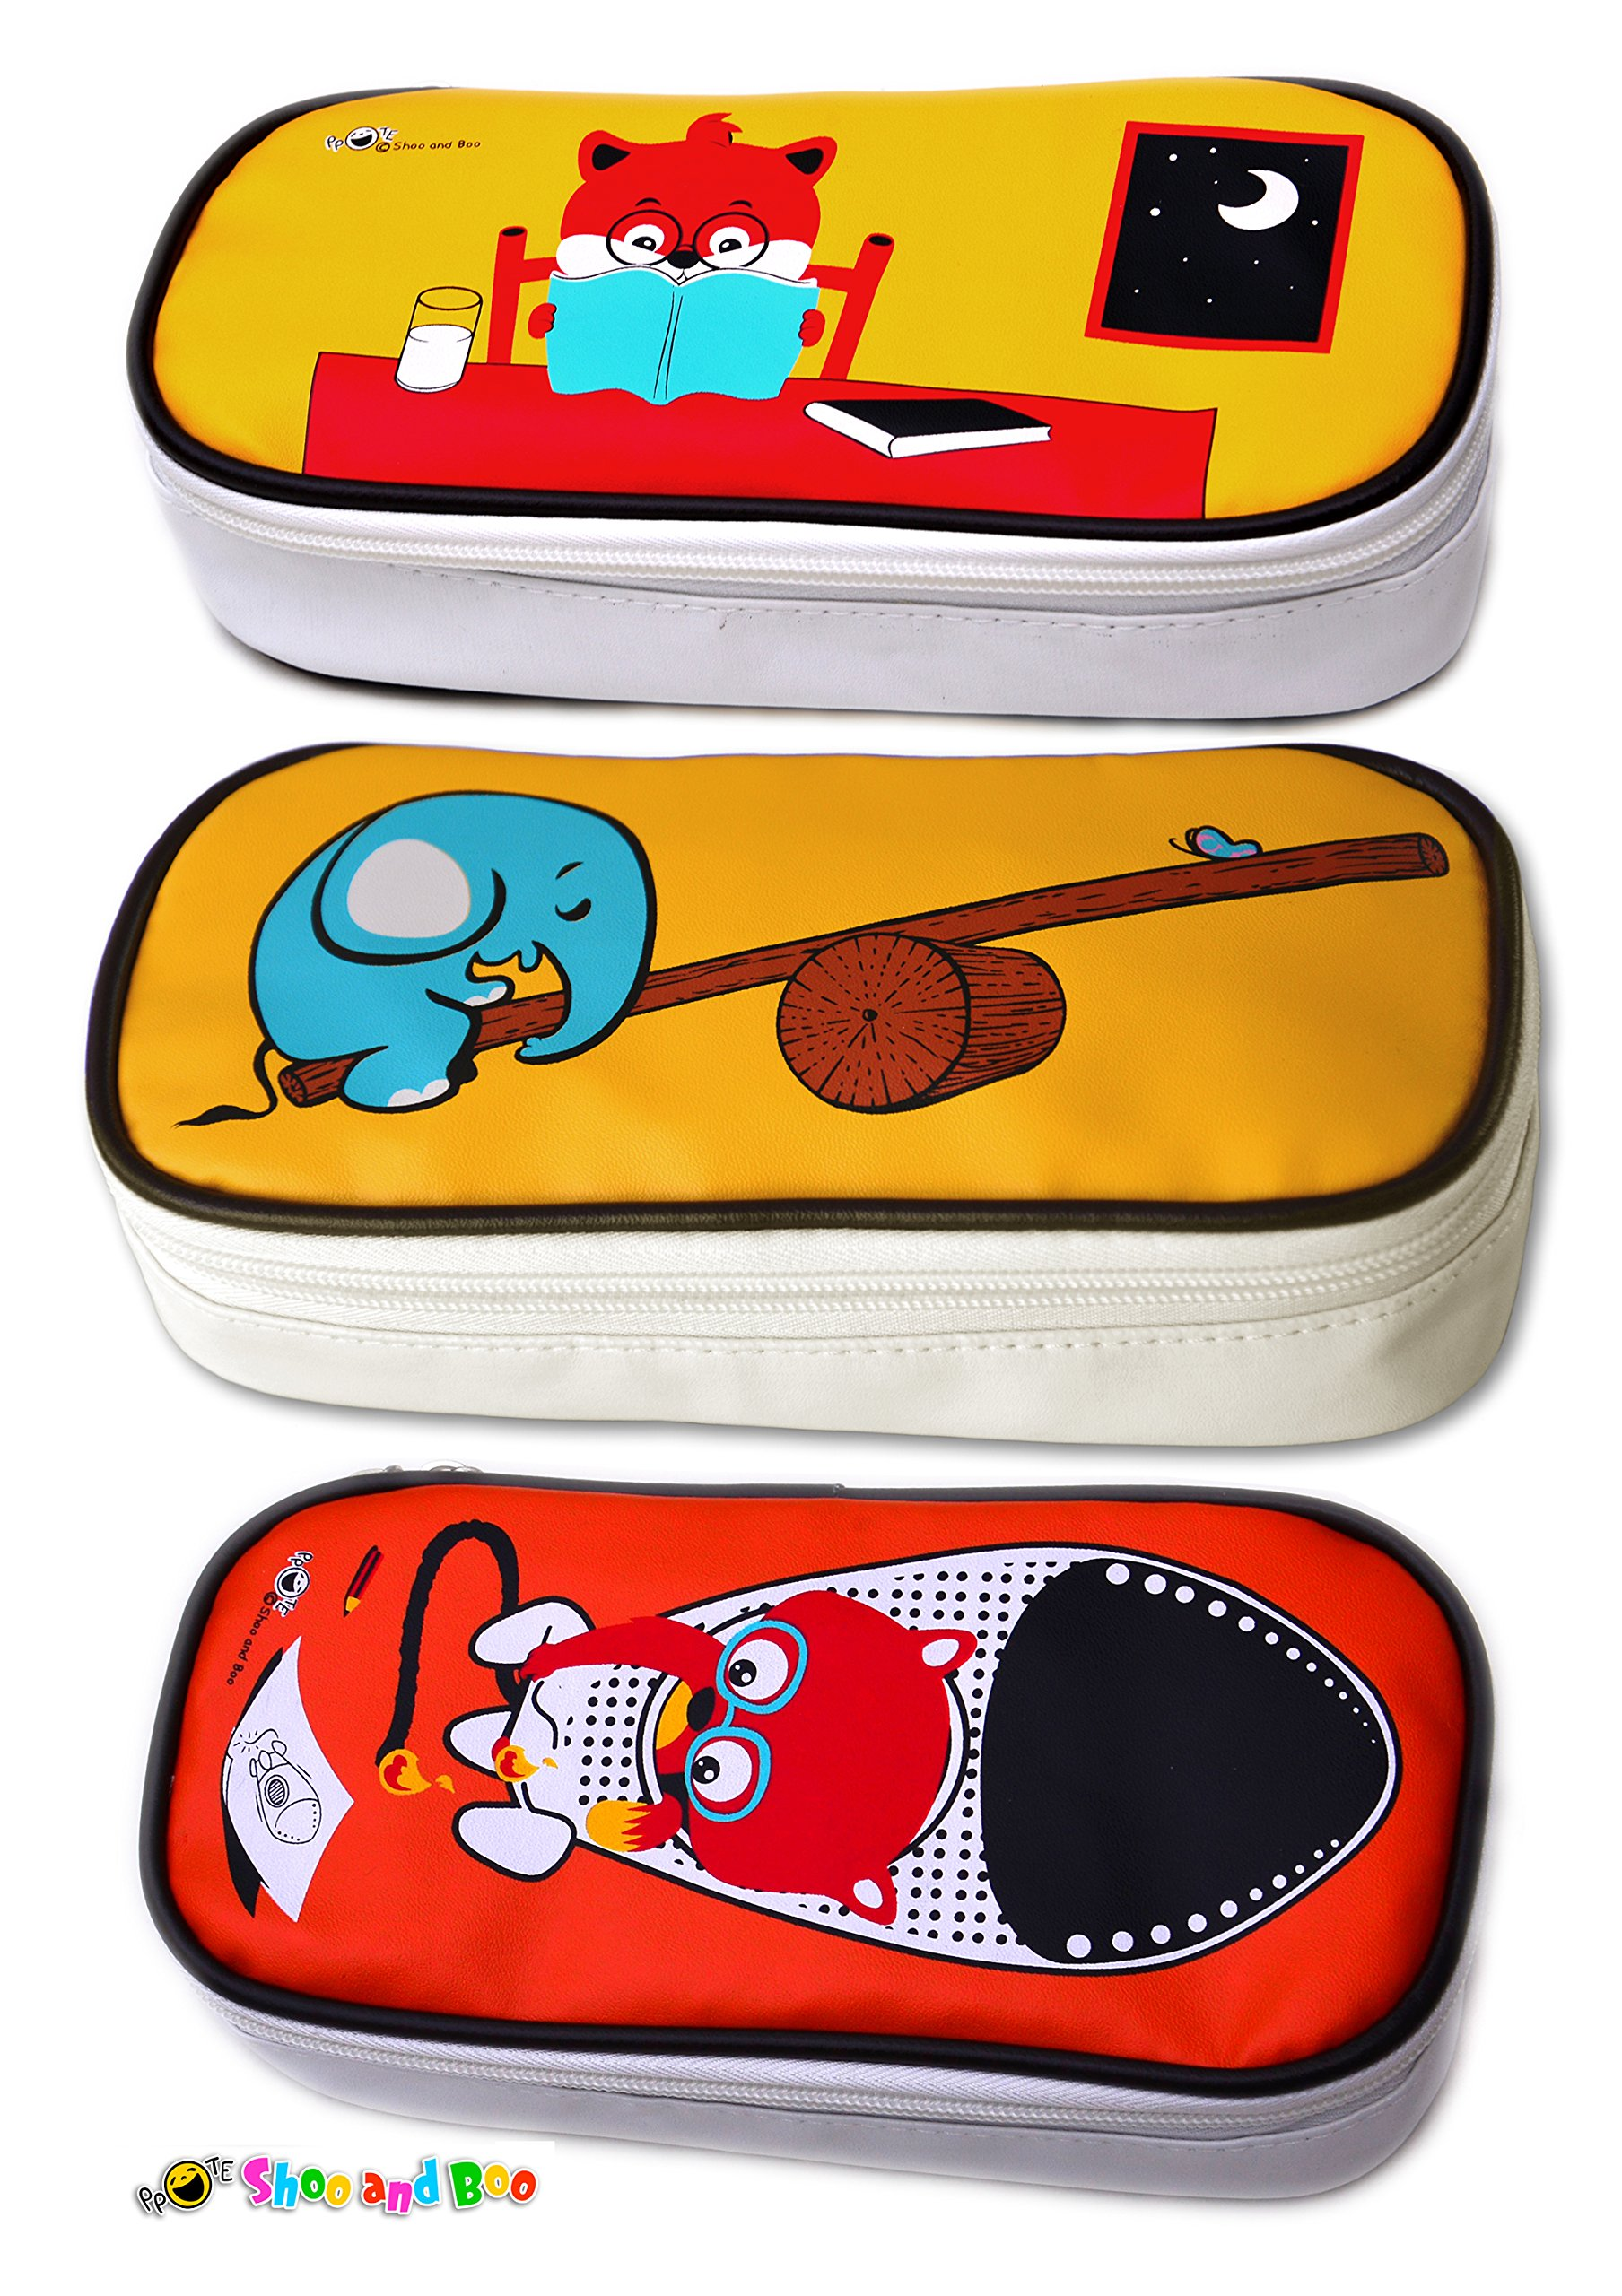 Shoo and Boo Large Stylish Pencil Case Utility Case Featuring Animals (All Three Designs)